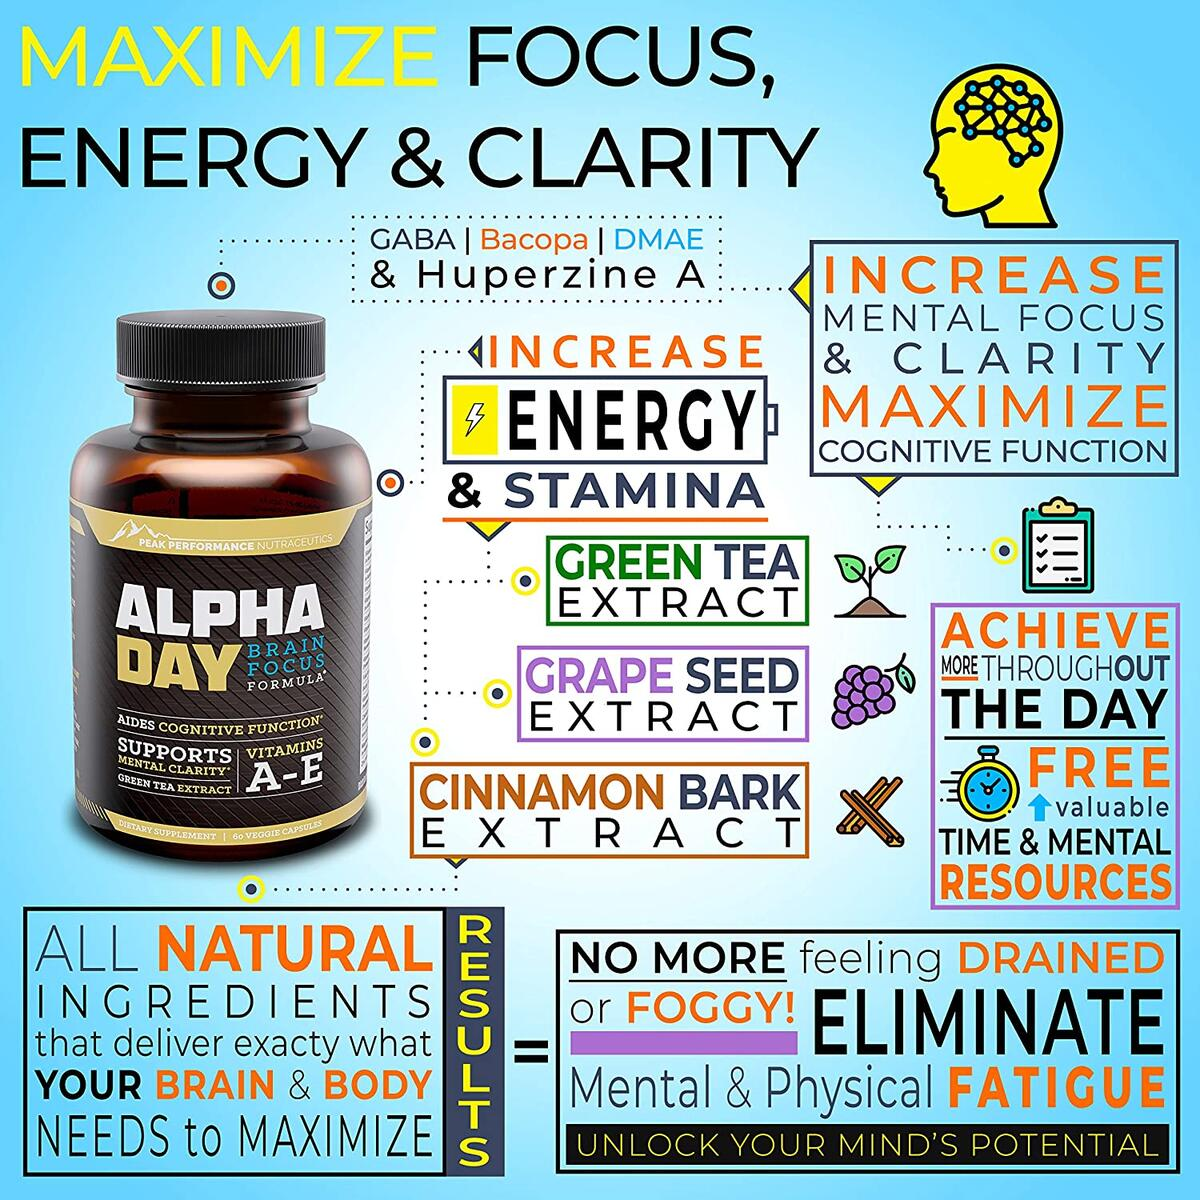 Alpha Day Nootropic Brain Supplement Vitamins. Focus and Energy Pills, Memory Booster, Mental Clarity, Concentration Support and Cognitive Enhancement. Bacopa Monnieri, Huperzine A and DMAE. 60 Pills